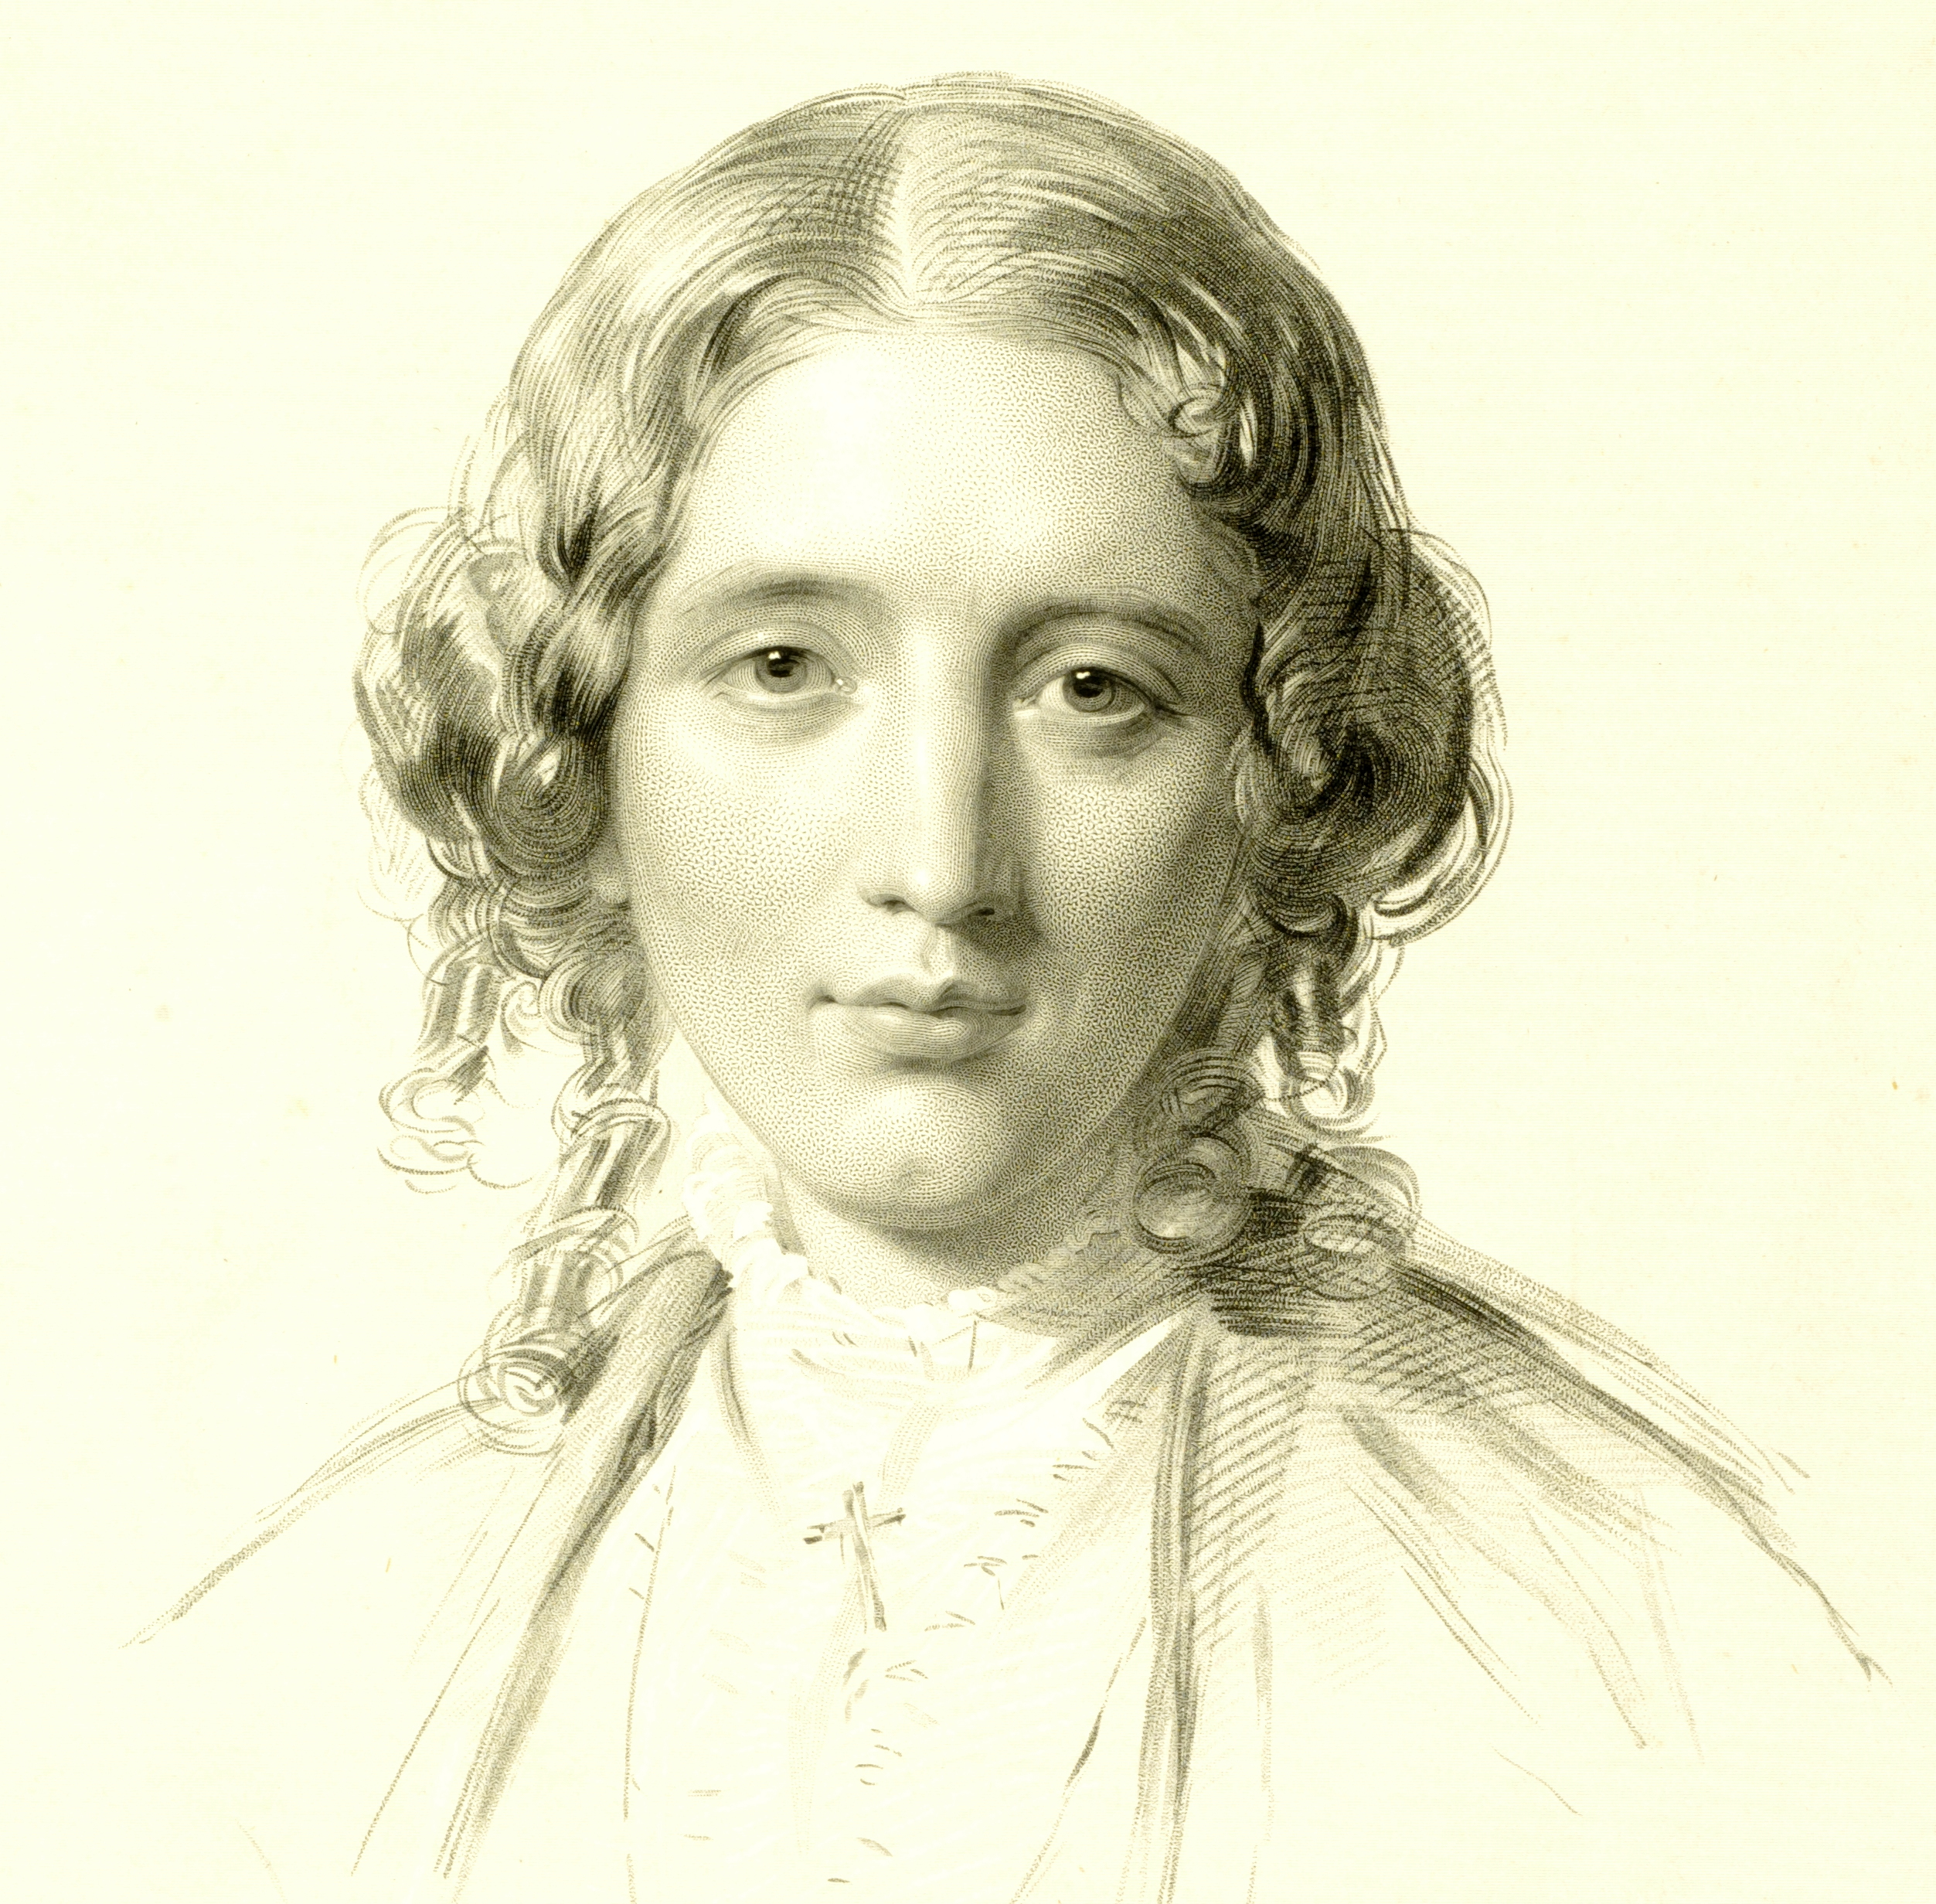 Harriet Beecher-Stowe